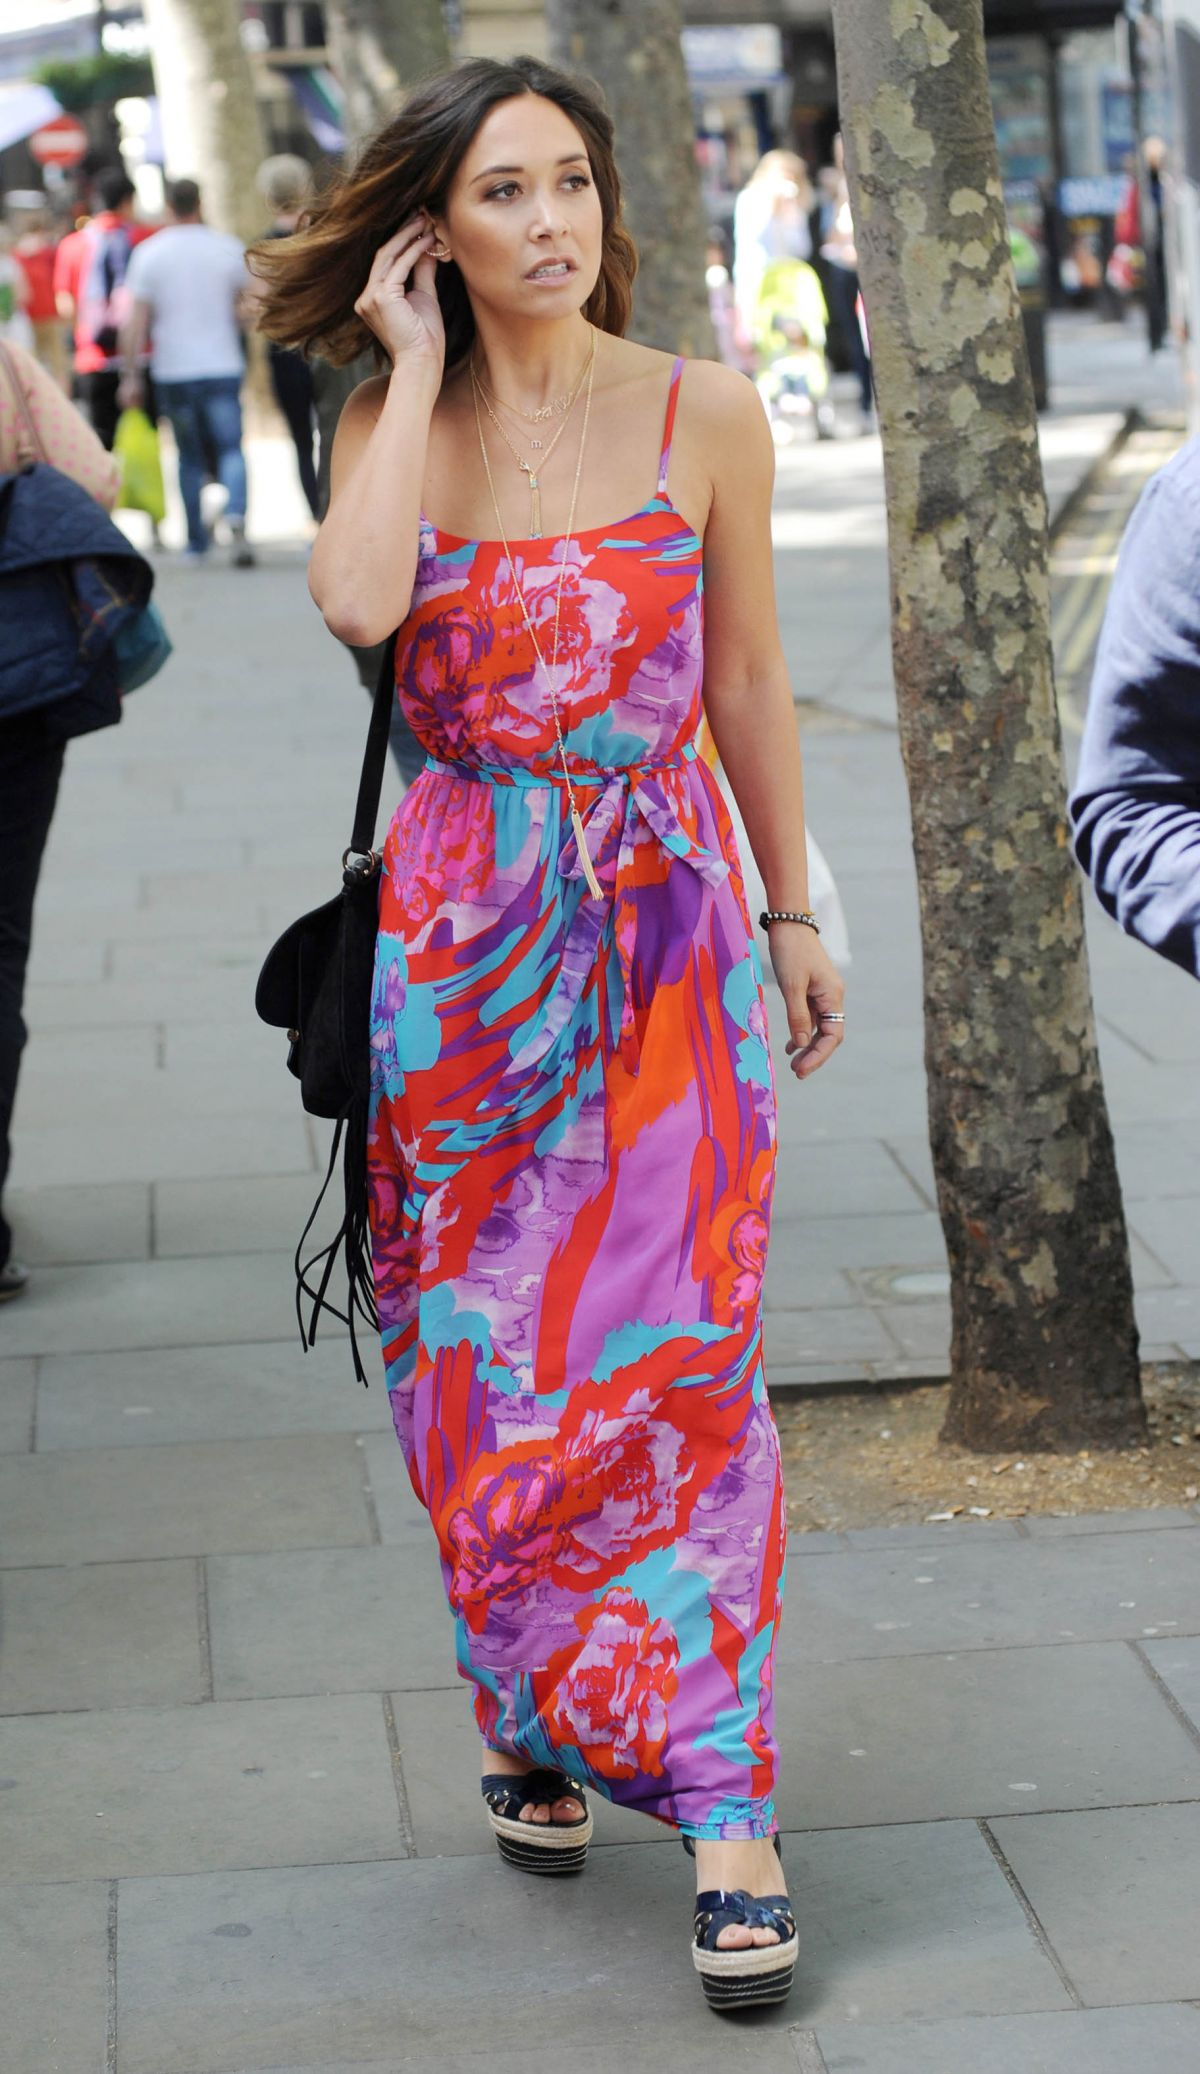 MYLEENE KLASS Out and About in London 05/27/2015